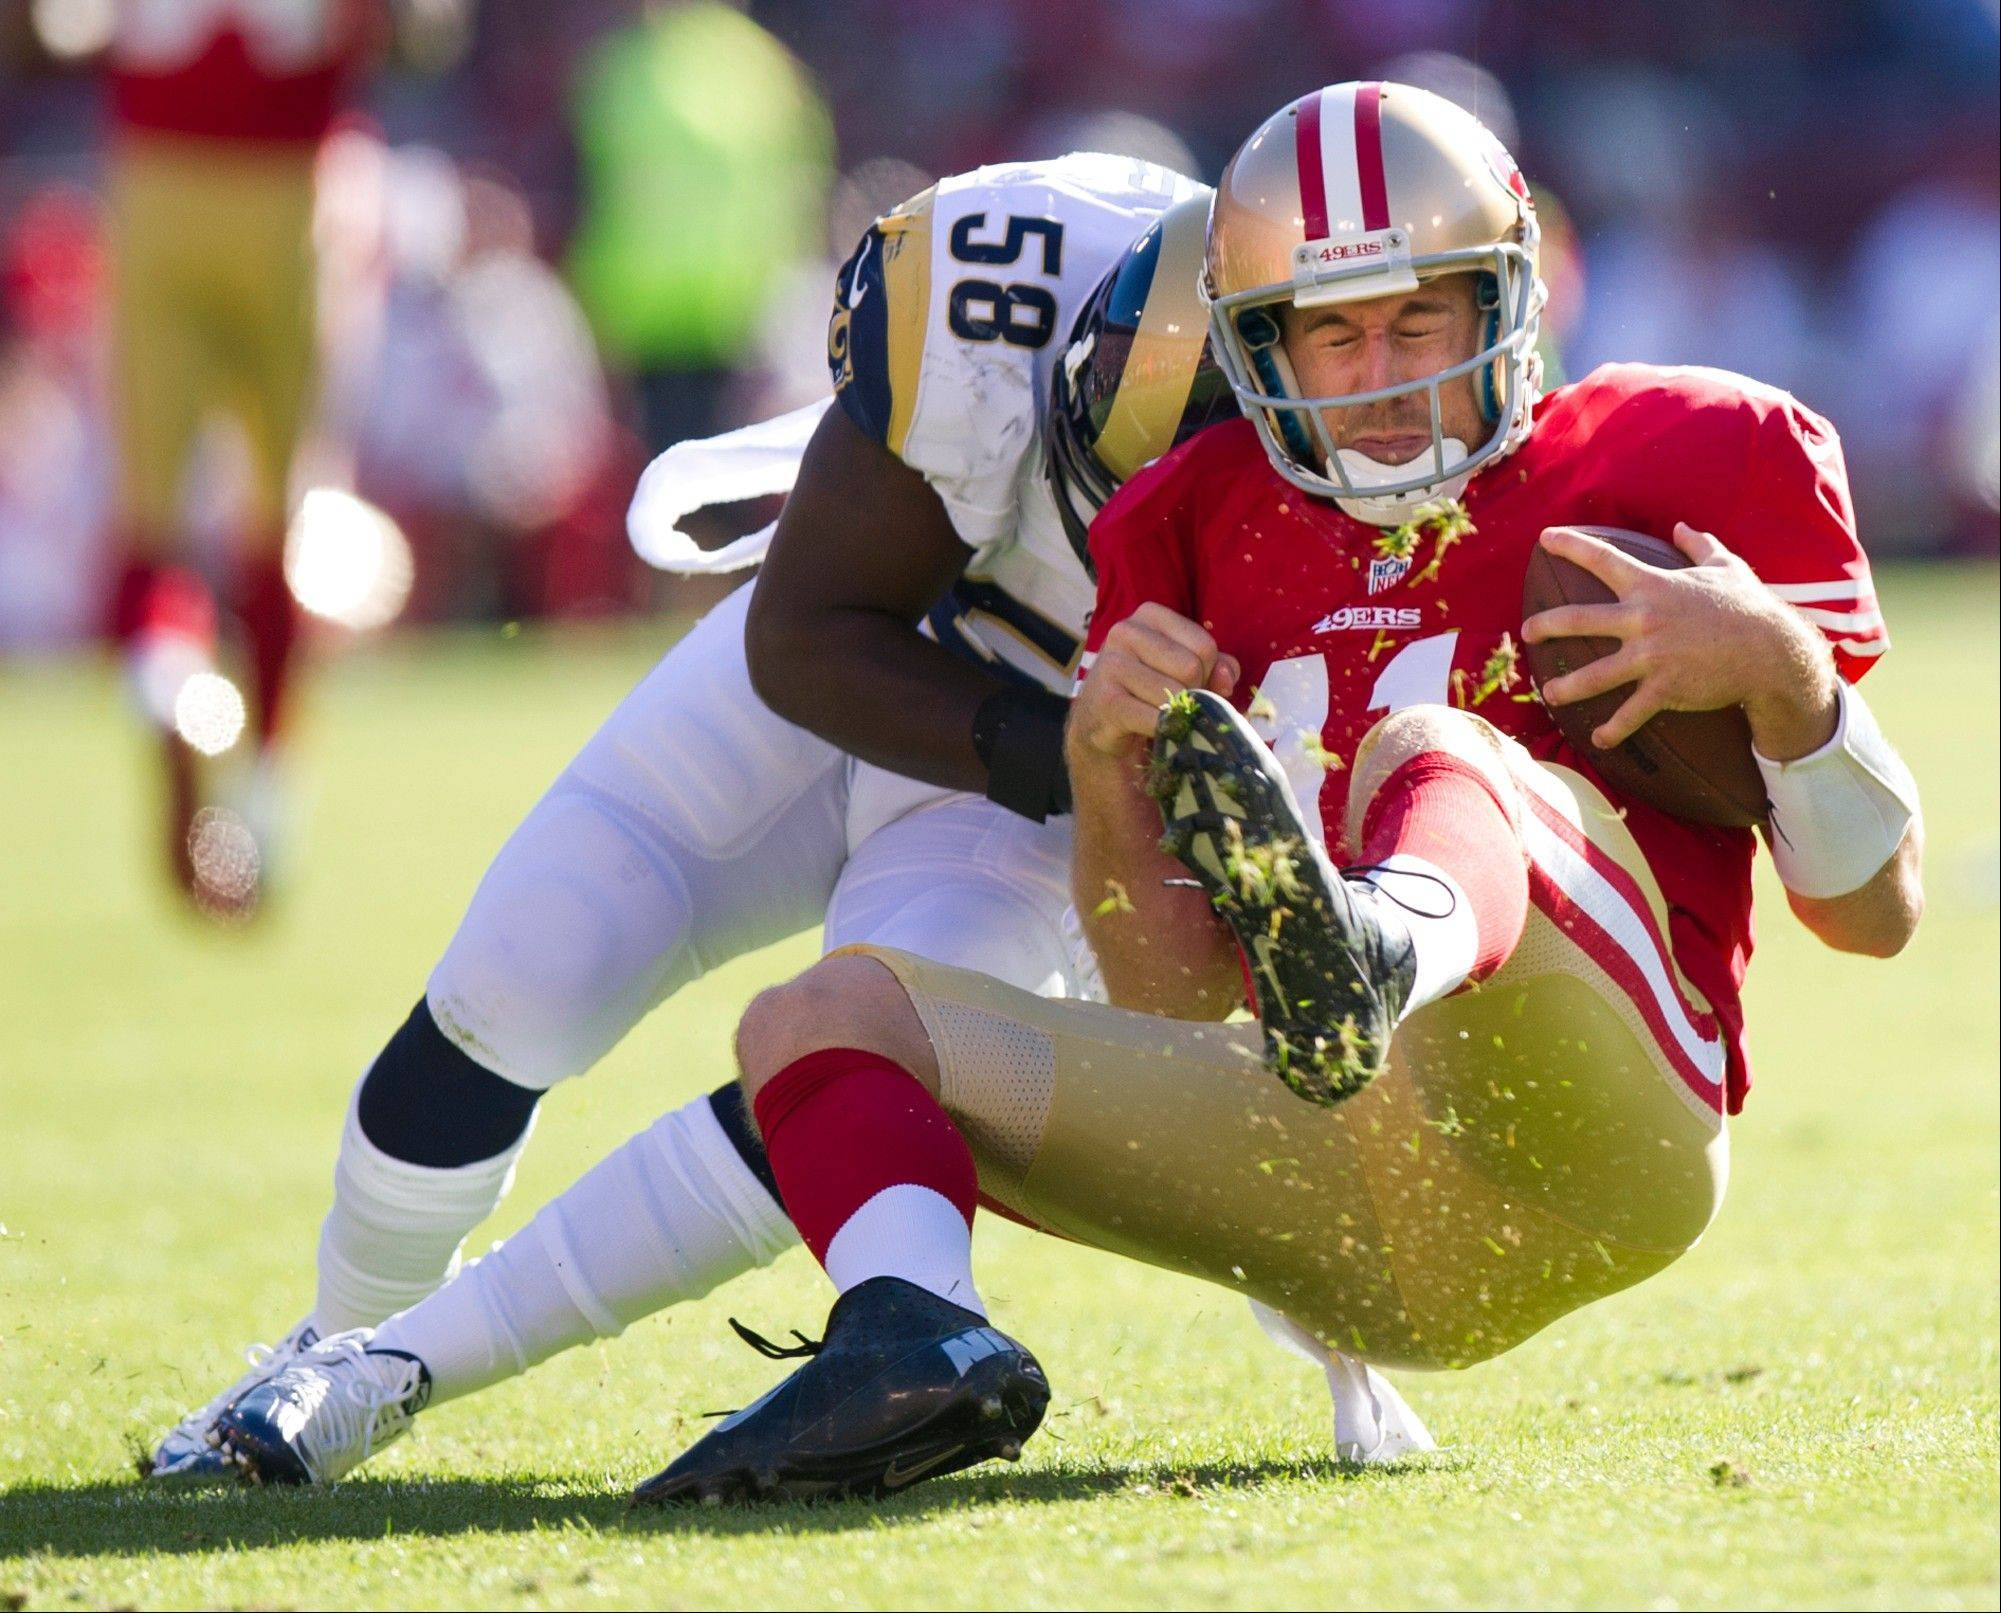 San Francisco 49ers quarterback Alex Smith is tackled by St. Louis linebacker Jo-Lonn Dunbar three weeks ago. Smith had a concussion from the play and has not returned to the field despite doctors clearing him to play.